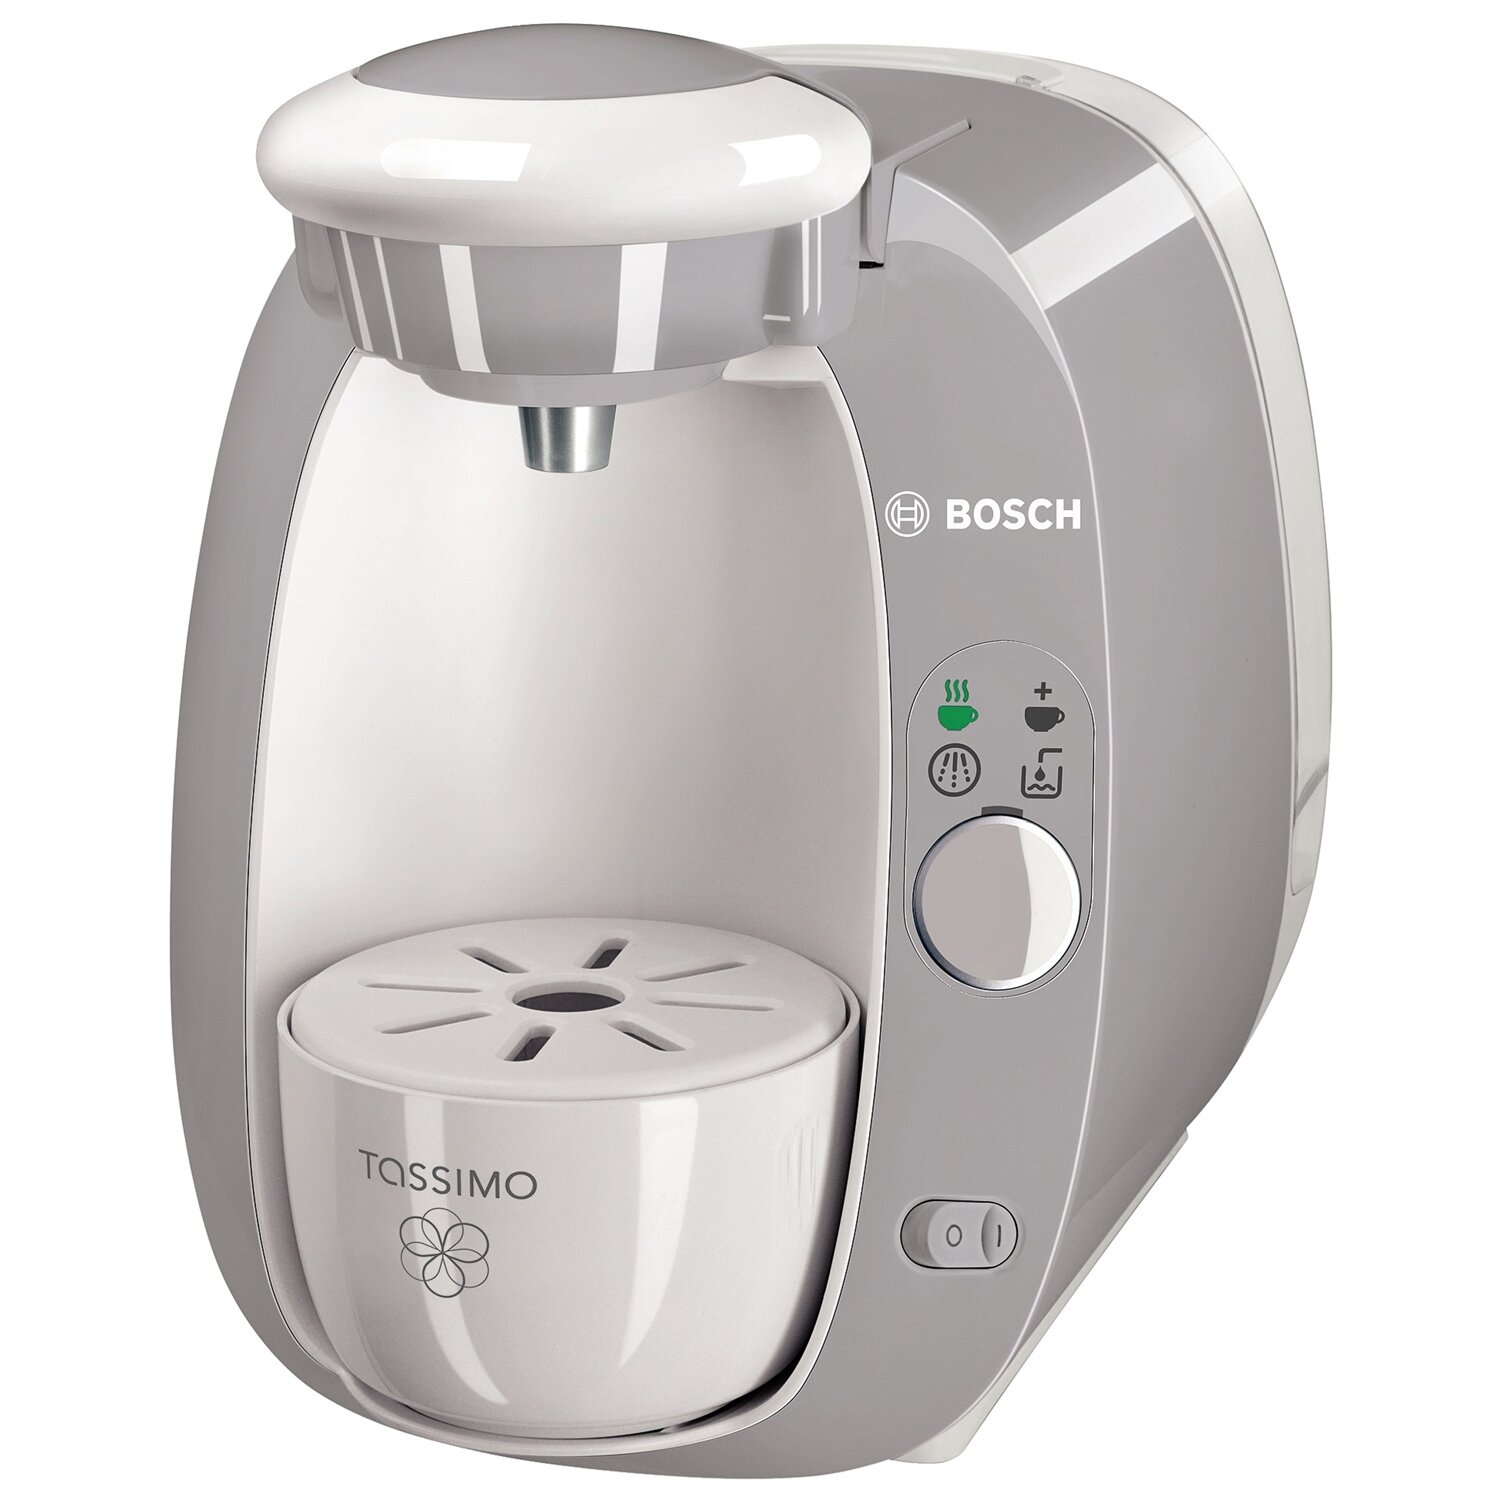 bosch tassimo t20 coffee maker reviews wayfair. Black Bedroom Furniture Sets. Home Design Ideas